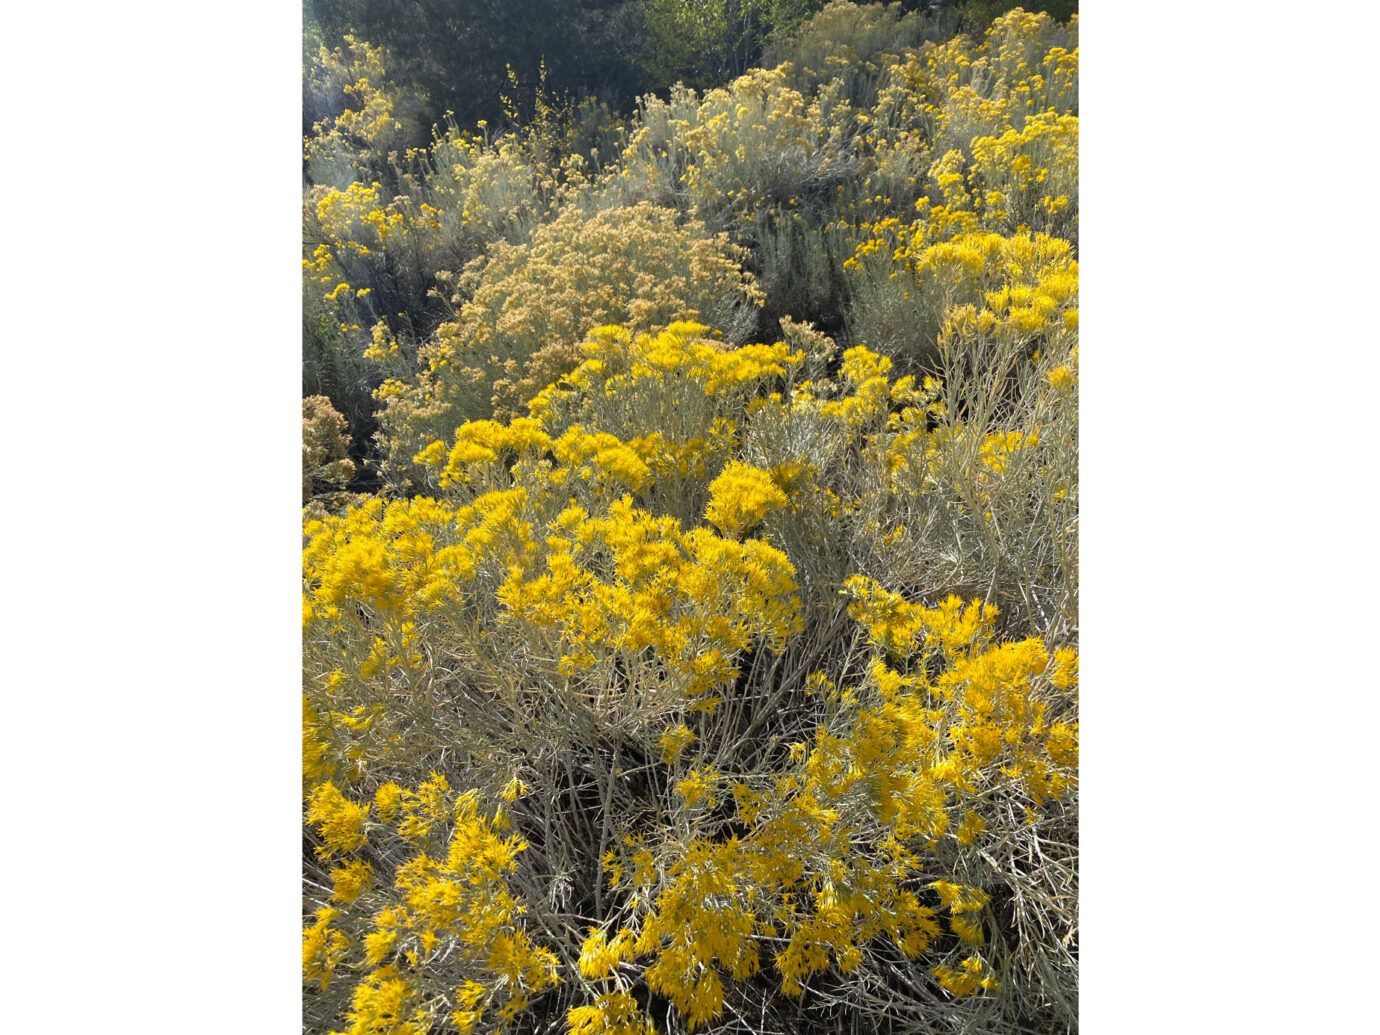 Yellow flowers, Autumn in New Mexico